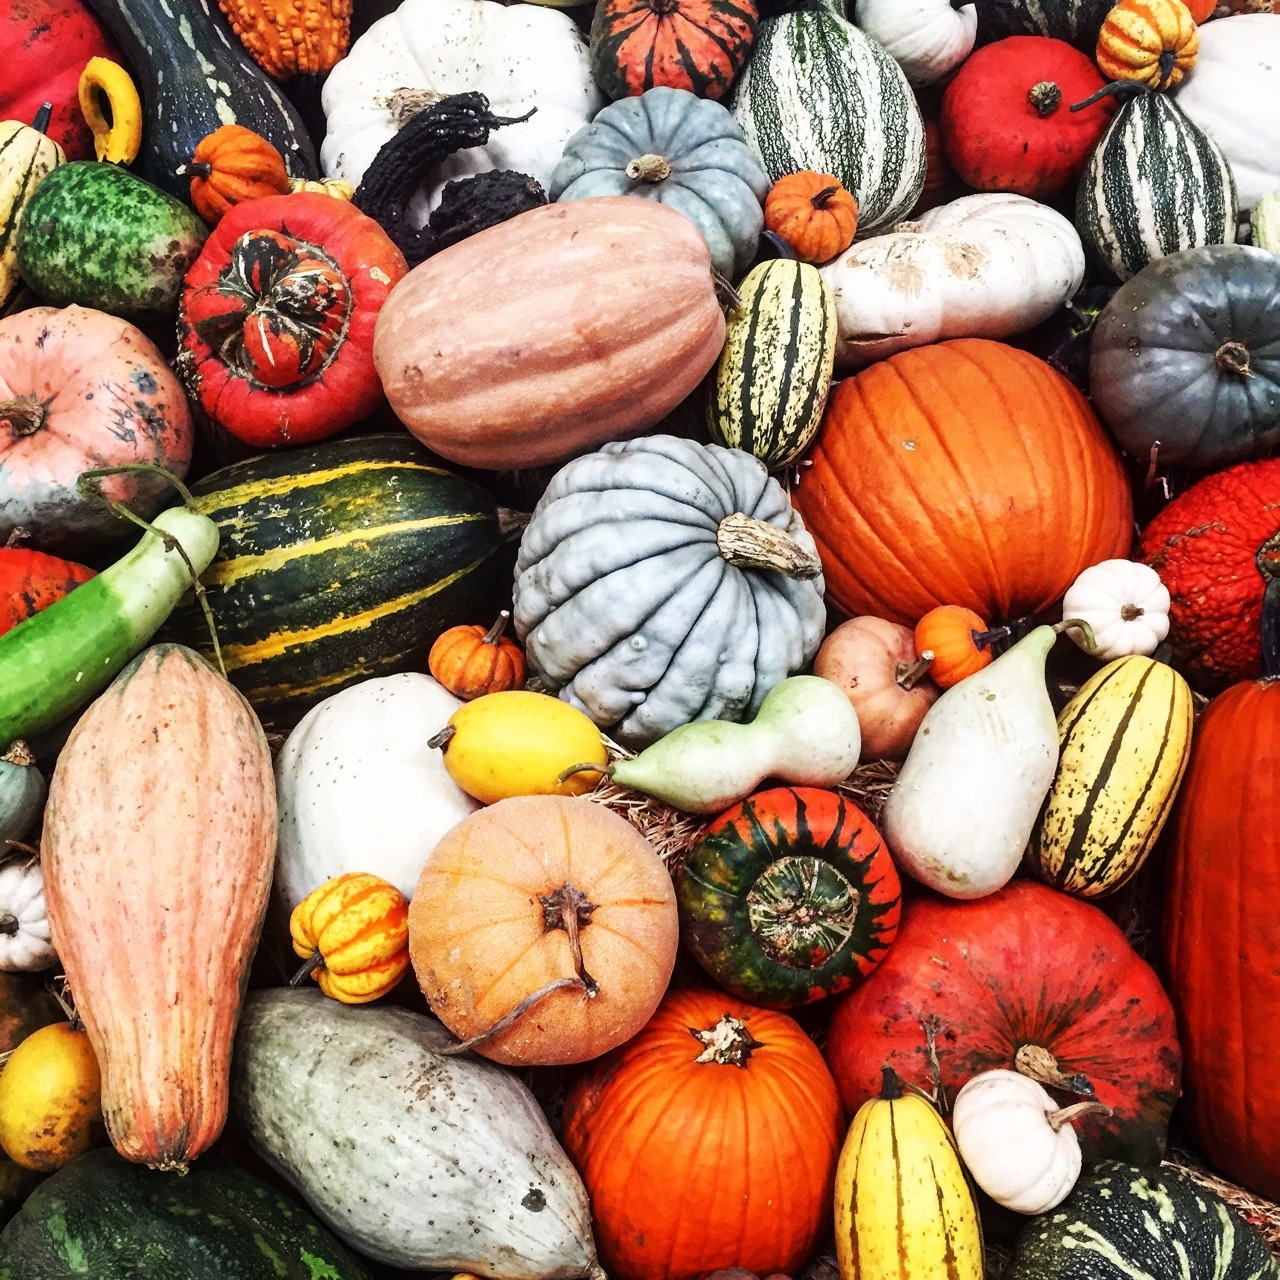 Heirloom Fair.  Sonoma County, California #california #heirloomseeds #sonoma #harvestfestival